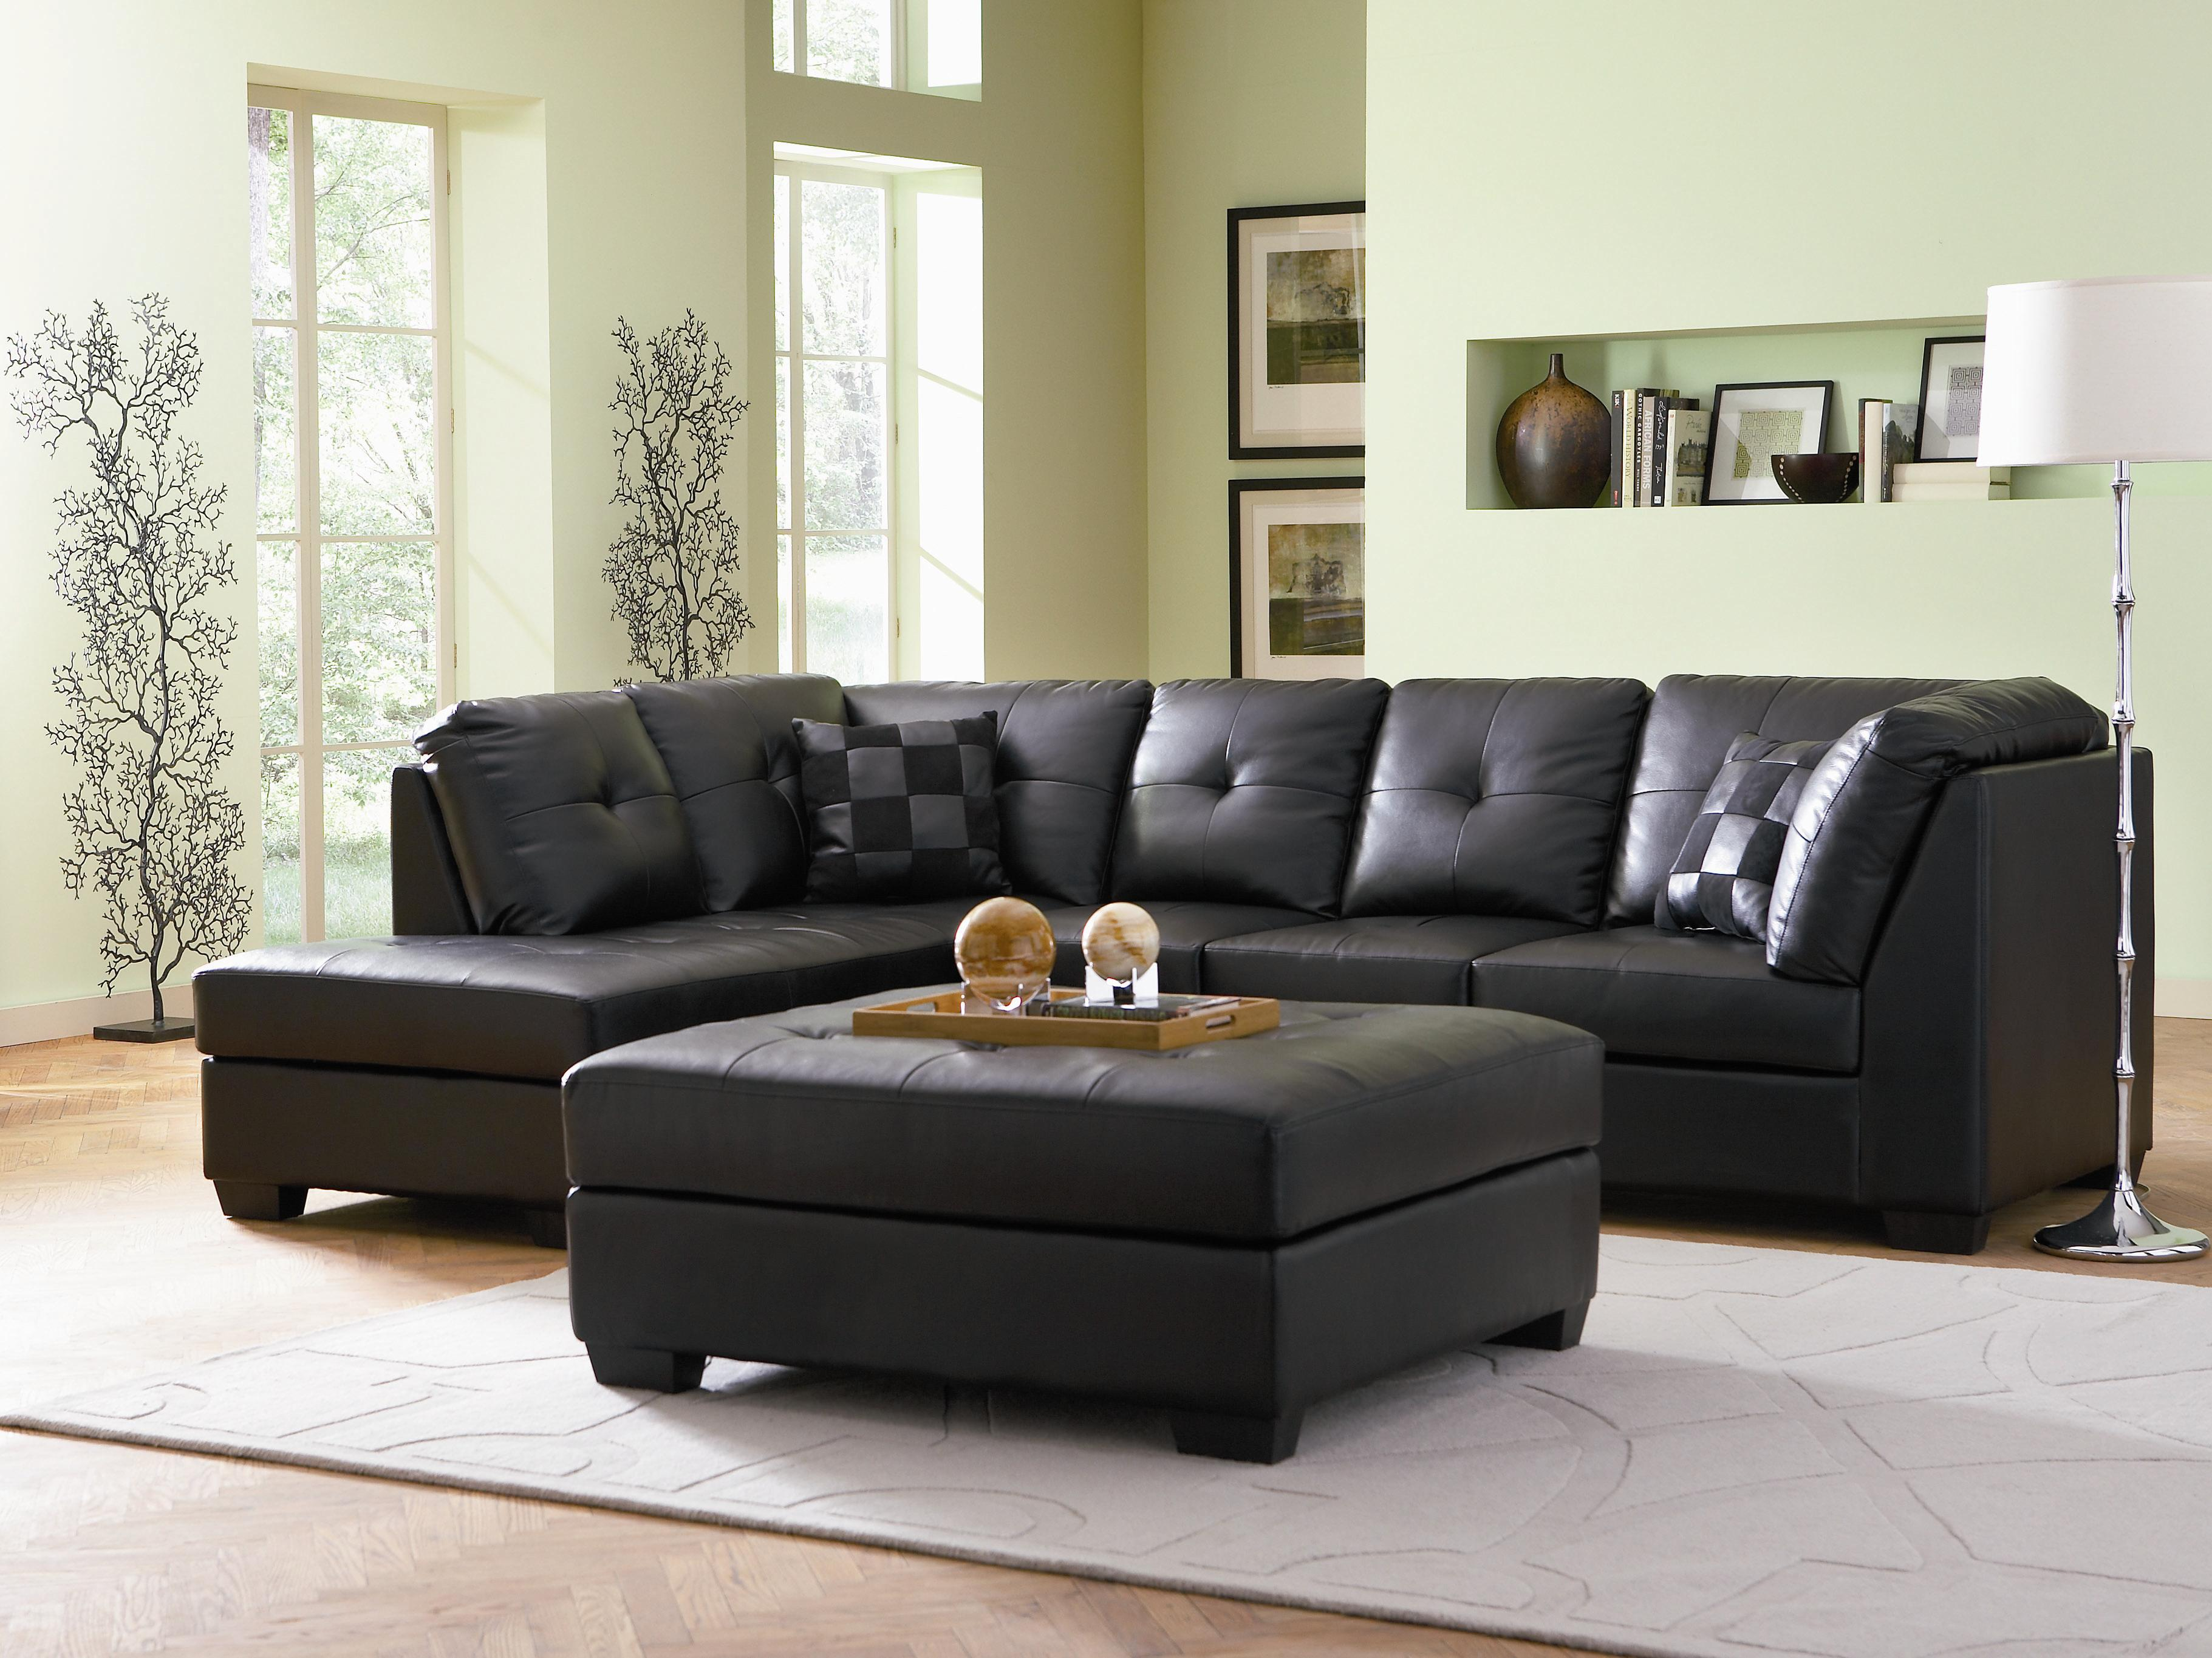 Cheap Sectional Sofa Darie Leather Sectional Sofa With Left Side Chaise By Coaster